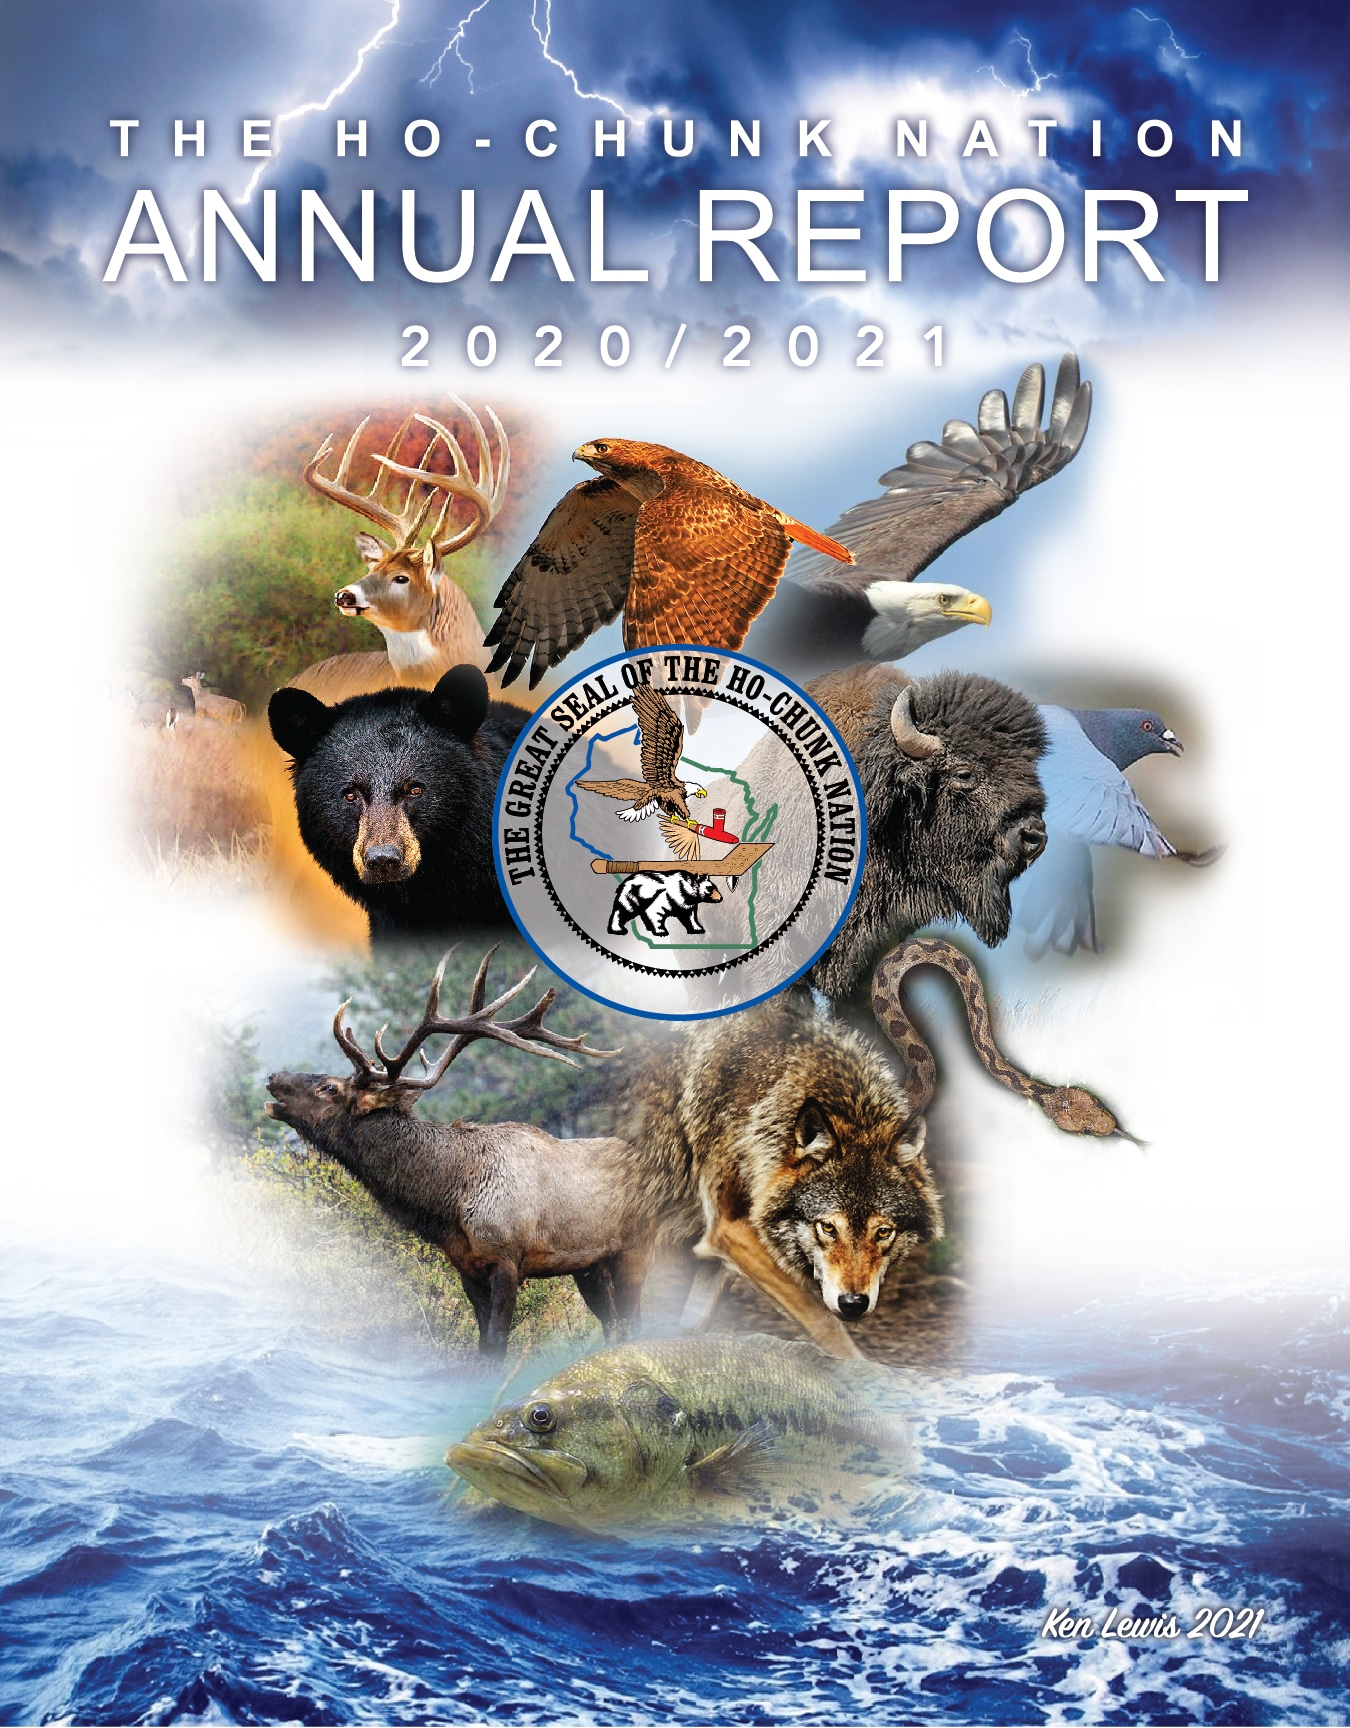 Ho-Chunk Nation 2020-2021 Annual Report